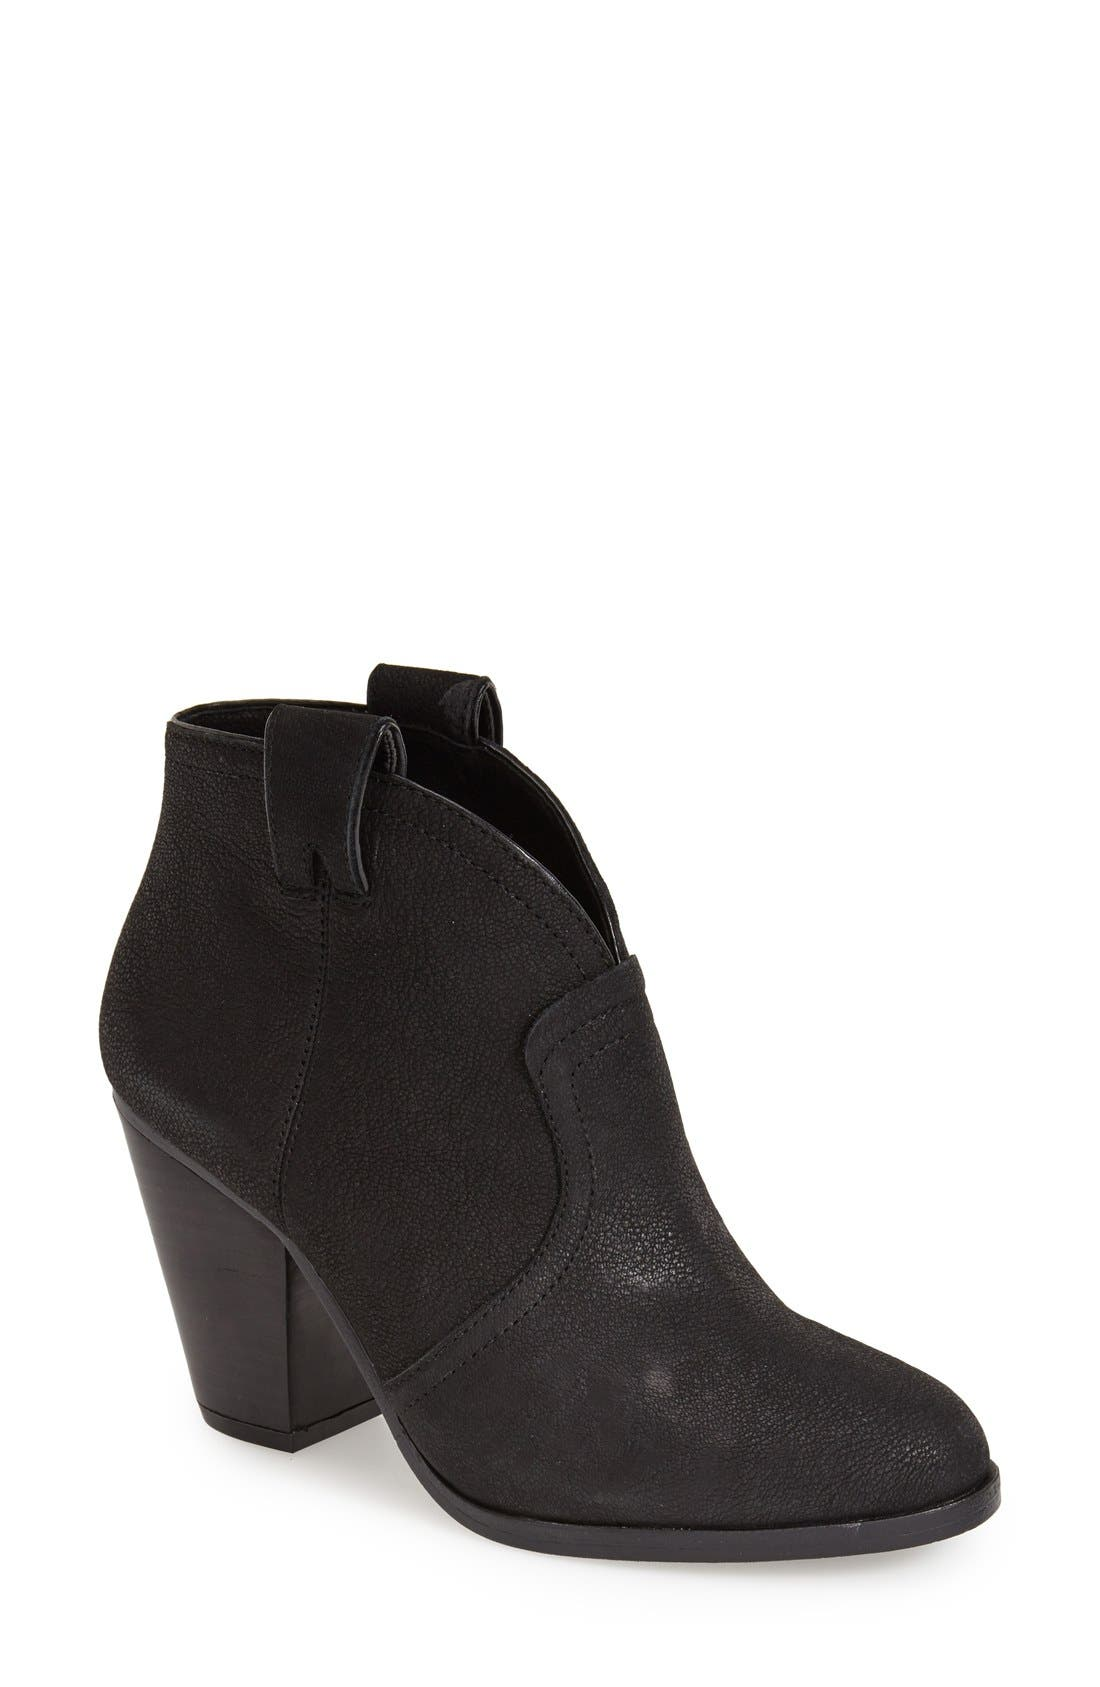 'Hillsy' Almond Toe Ankle Bootie,                             Main thumbnail 1, color,                             001